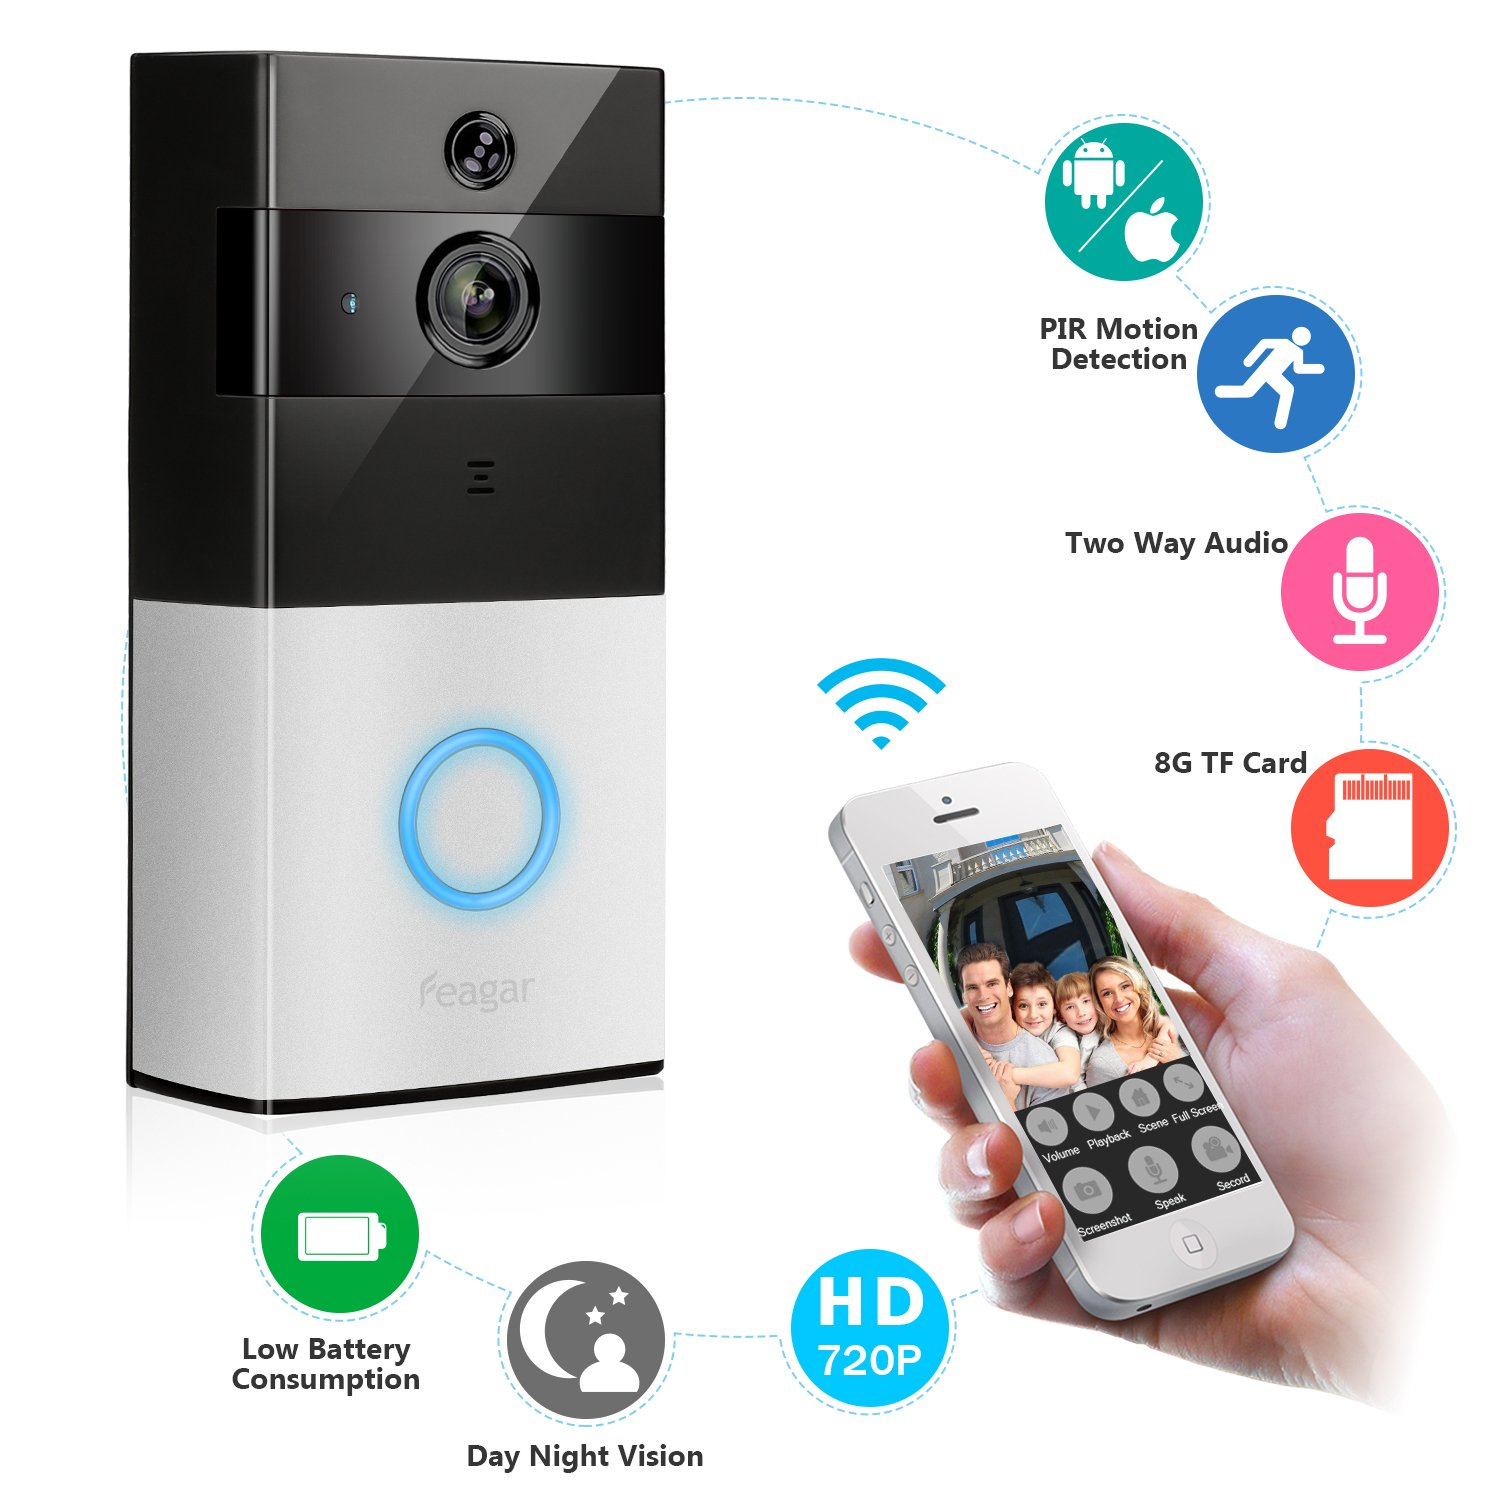 Wireless Video Doorbell, Feagar 720P Wifi Doorbell Camera Kit with Low Power Consumption,Free Storage,Two-Way Audio, Infrared Night Vision, Motion Detection and Remote Control for IOS and Android